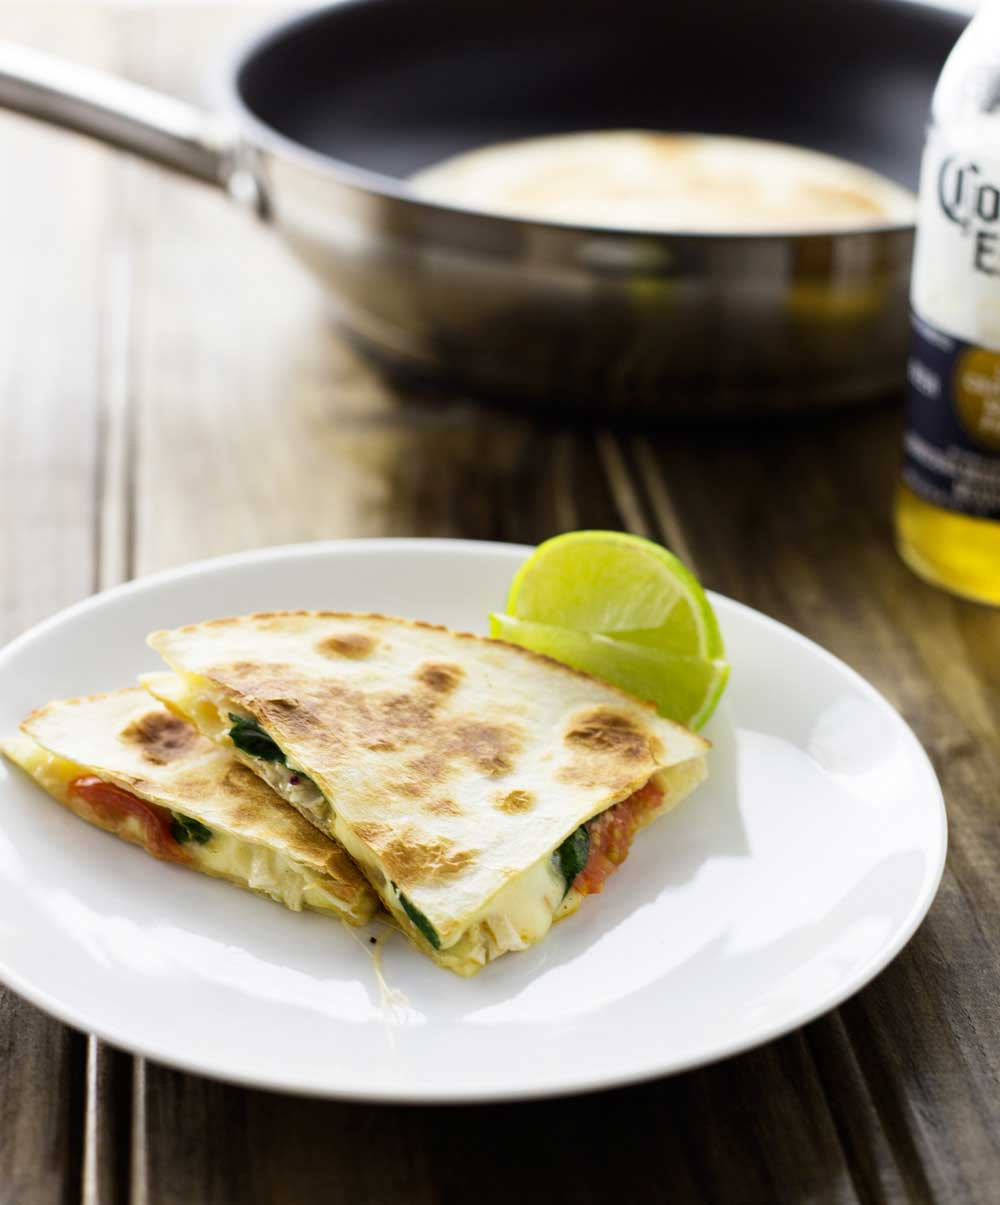 Cajun Chicken Quesadillas Cheesy Spicy Chicken Filled Tortillas Grilled  Until Crisp And Melted A